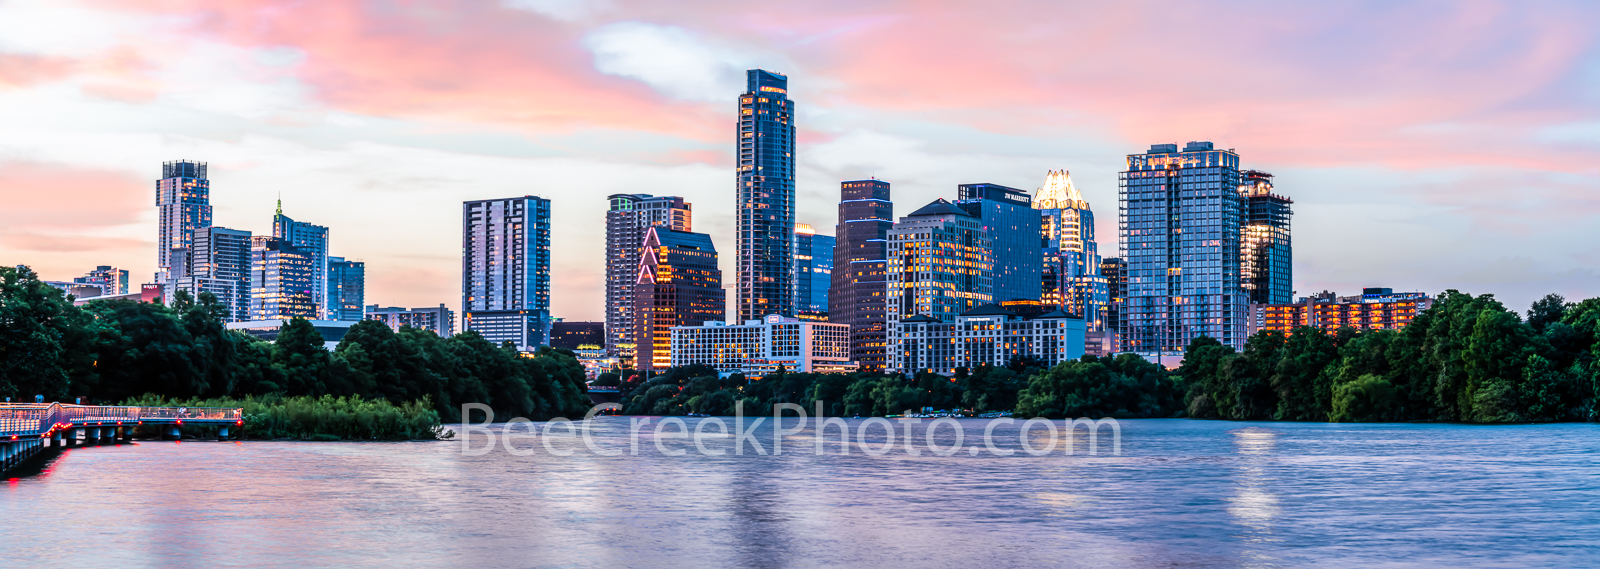 Austin Skyline, Austin, skyline, twilight, downtown austin, pics of texas, images of texas, downtown, city of austin, Dusk, lady bird lake, Panorama, pano,